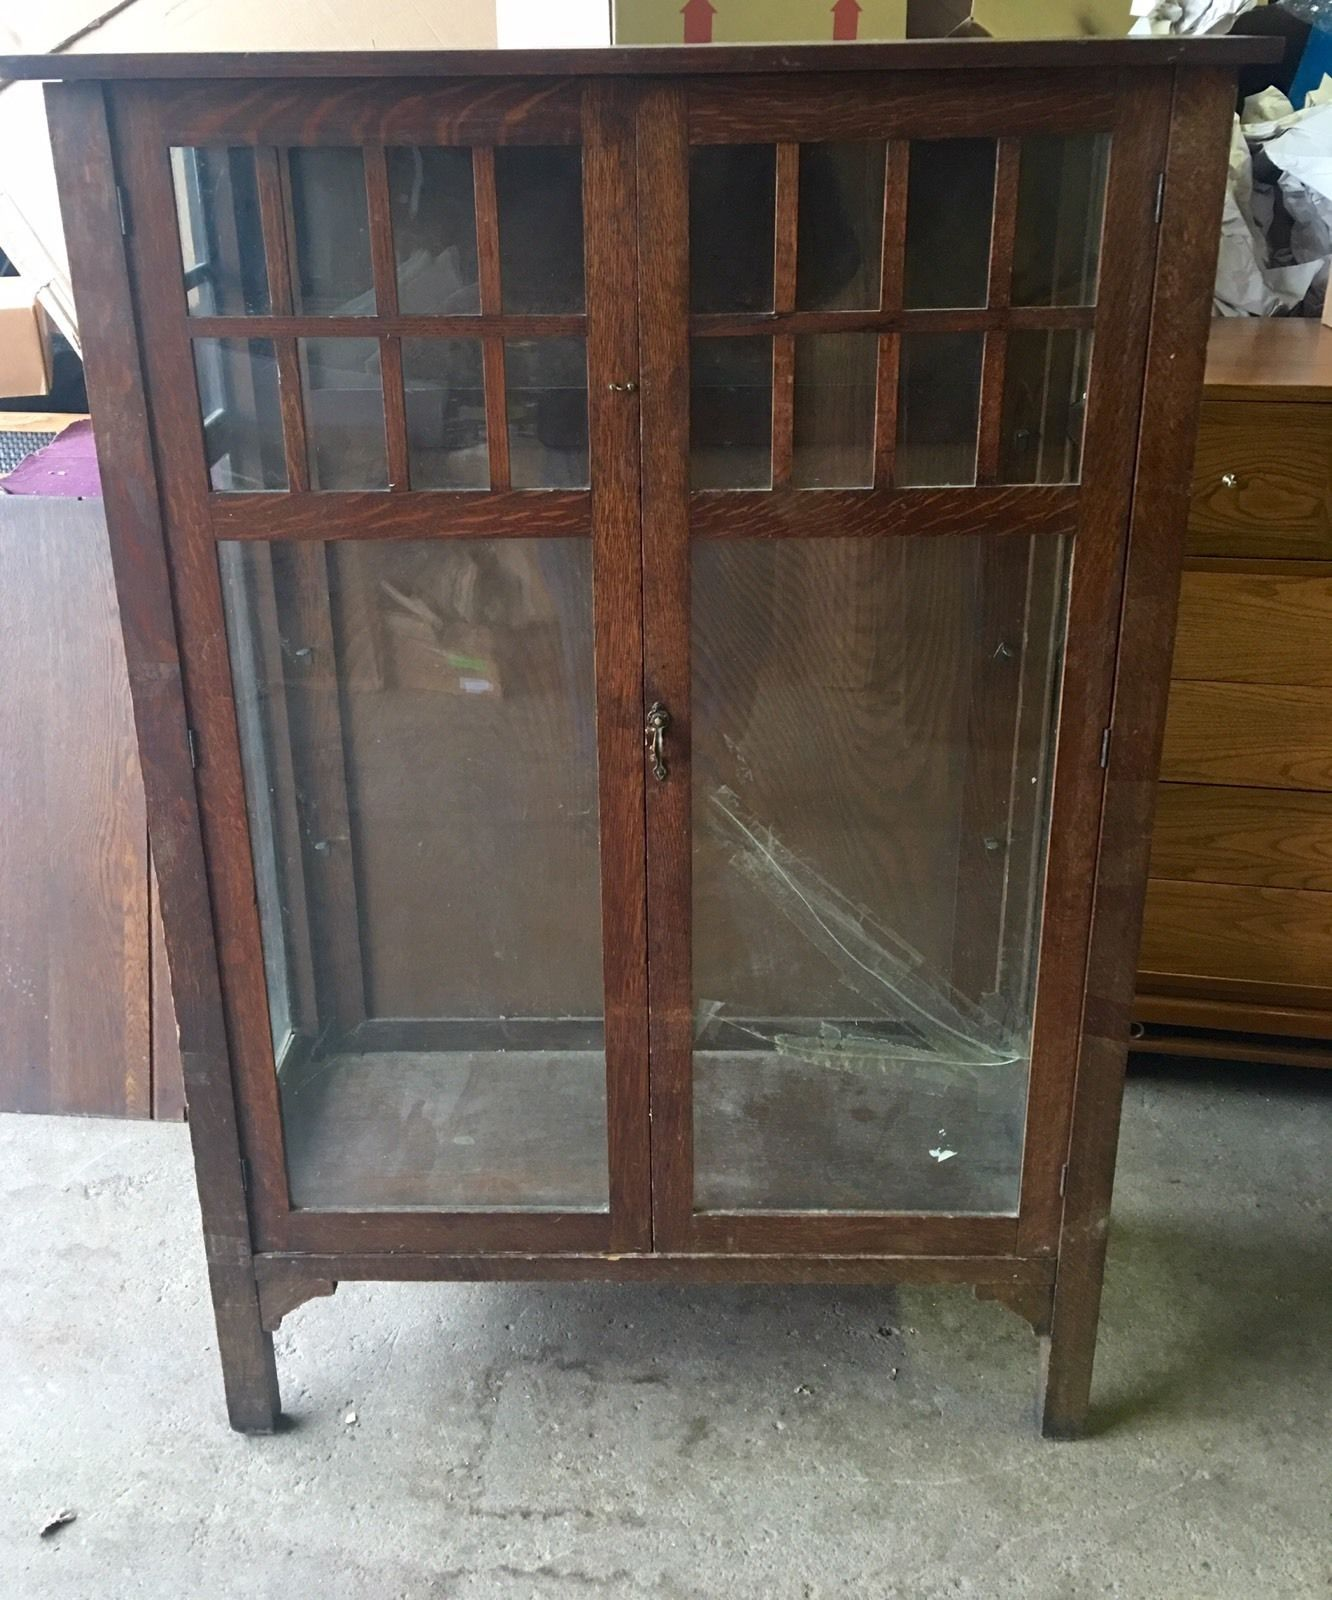 Rare Hersee Oak Arts & Crafts 1900's Bookcase For Restoration Shipping  Available | eBay - Rare Hersee Oak Arts & Crafts 1900's Bookcase For Restoration